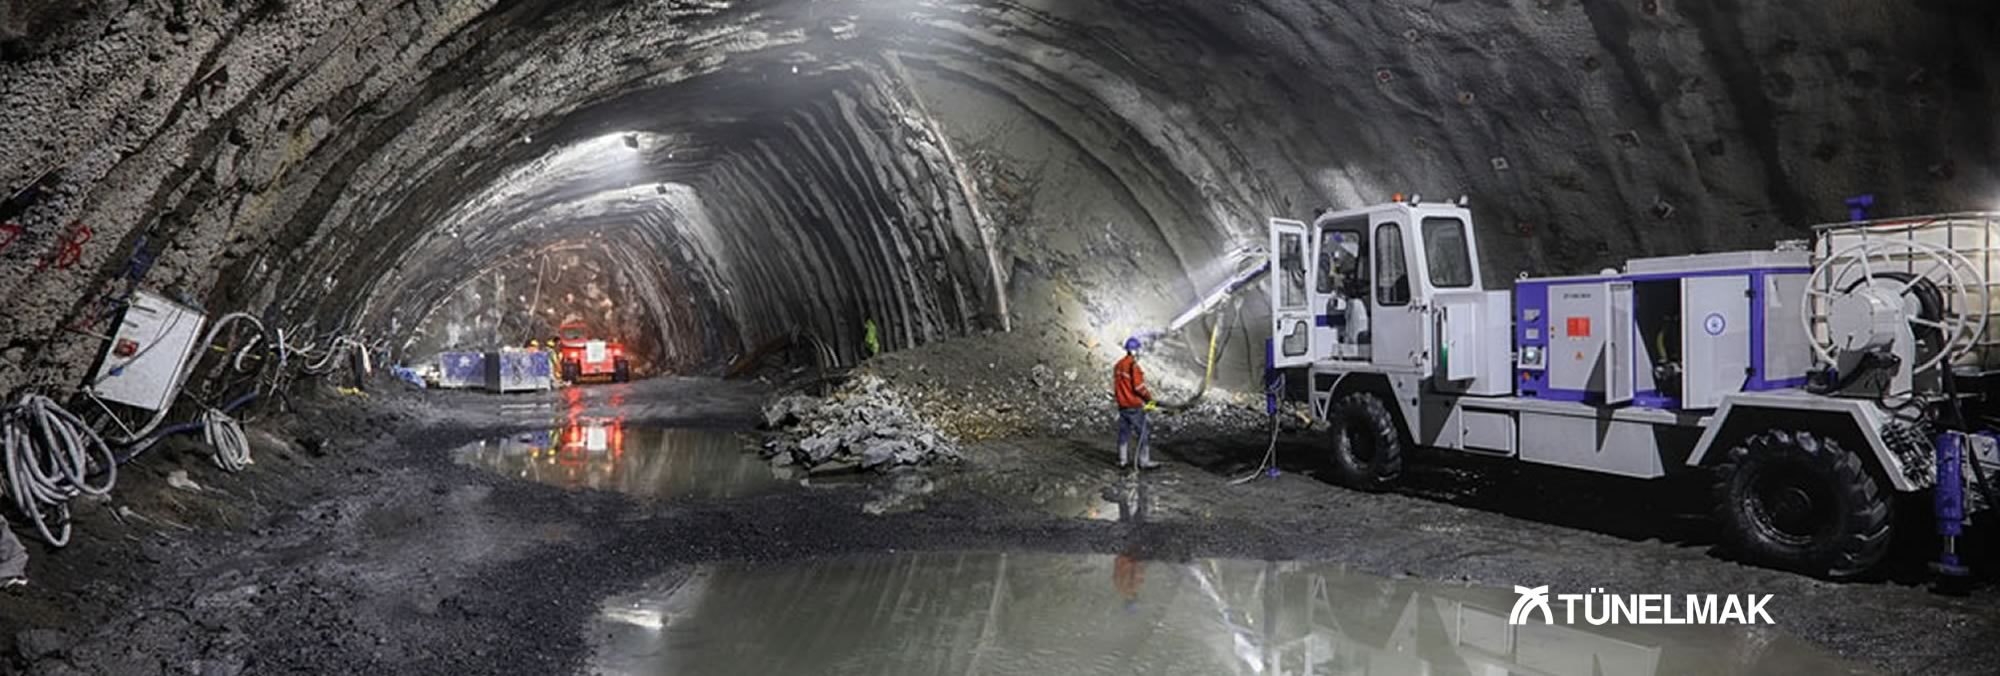 tunnelling contract news for the world's tunnel engineers